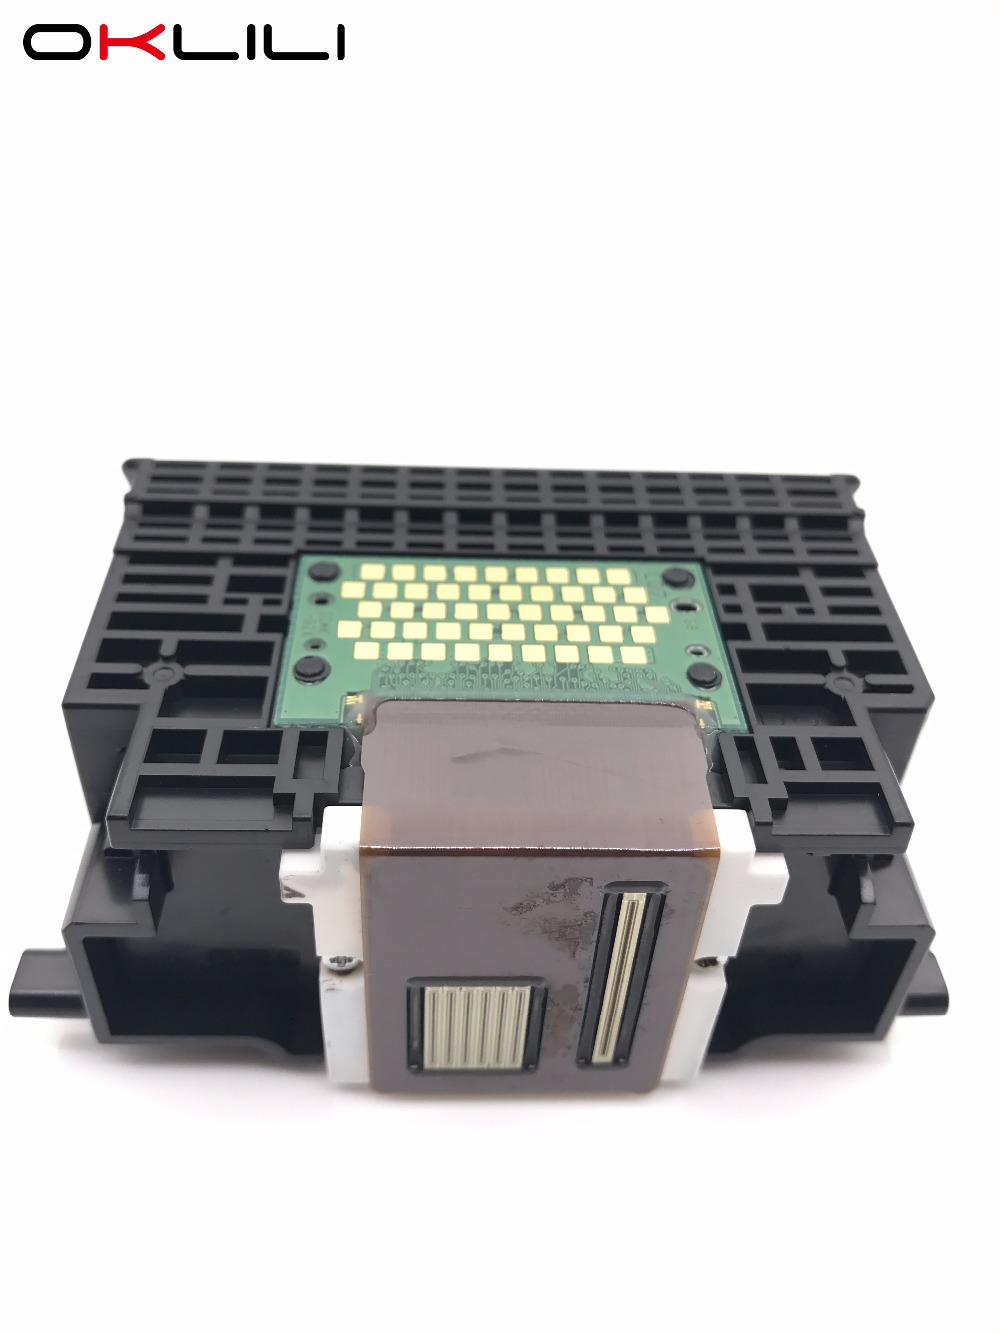 OKLILI ORIGINAL QY6-0061 QY6-0061-000 Printhead Print Head for Canon iP4300 iP5200 iP5200R MP600 MP600R MP800 MP800R MP830 new original print head qy6 0061 00 printhead for canon ip4300 ip5200 ip5200r mp600 mp600r mp800 mp800r mp830 plotter